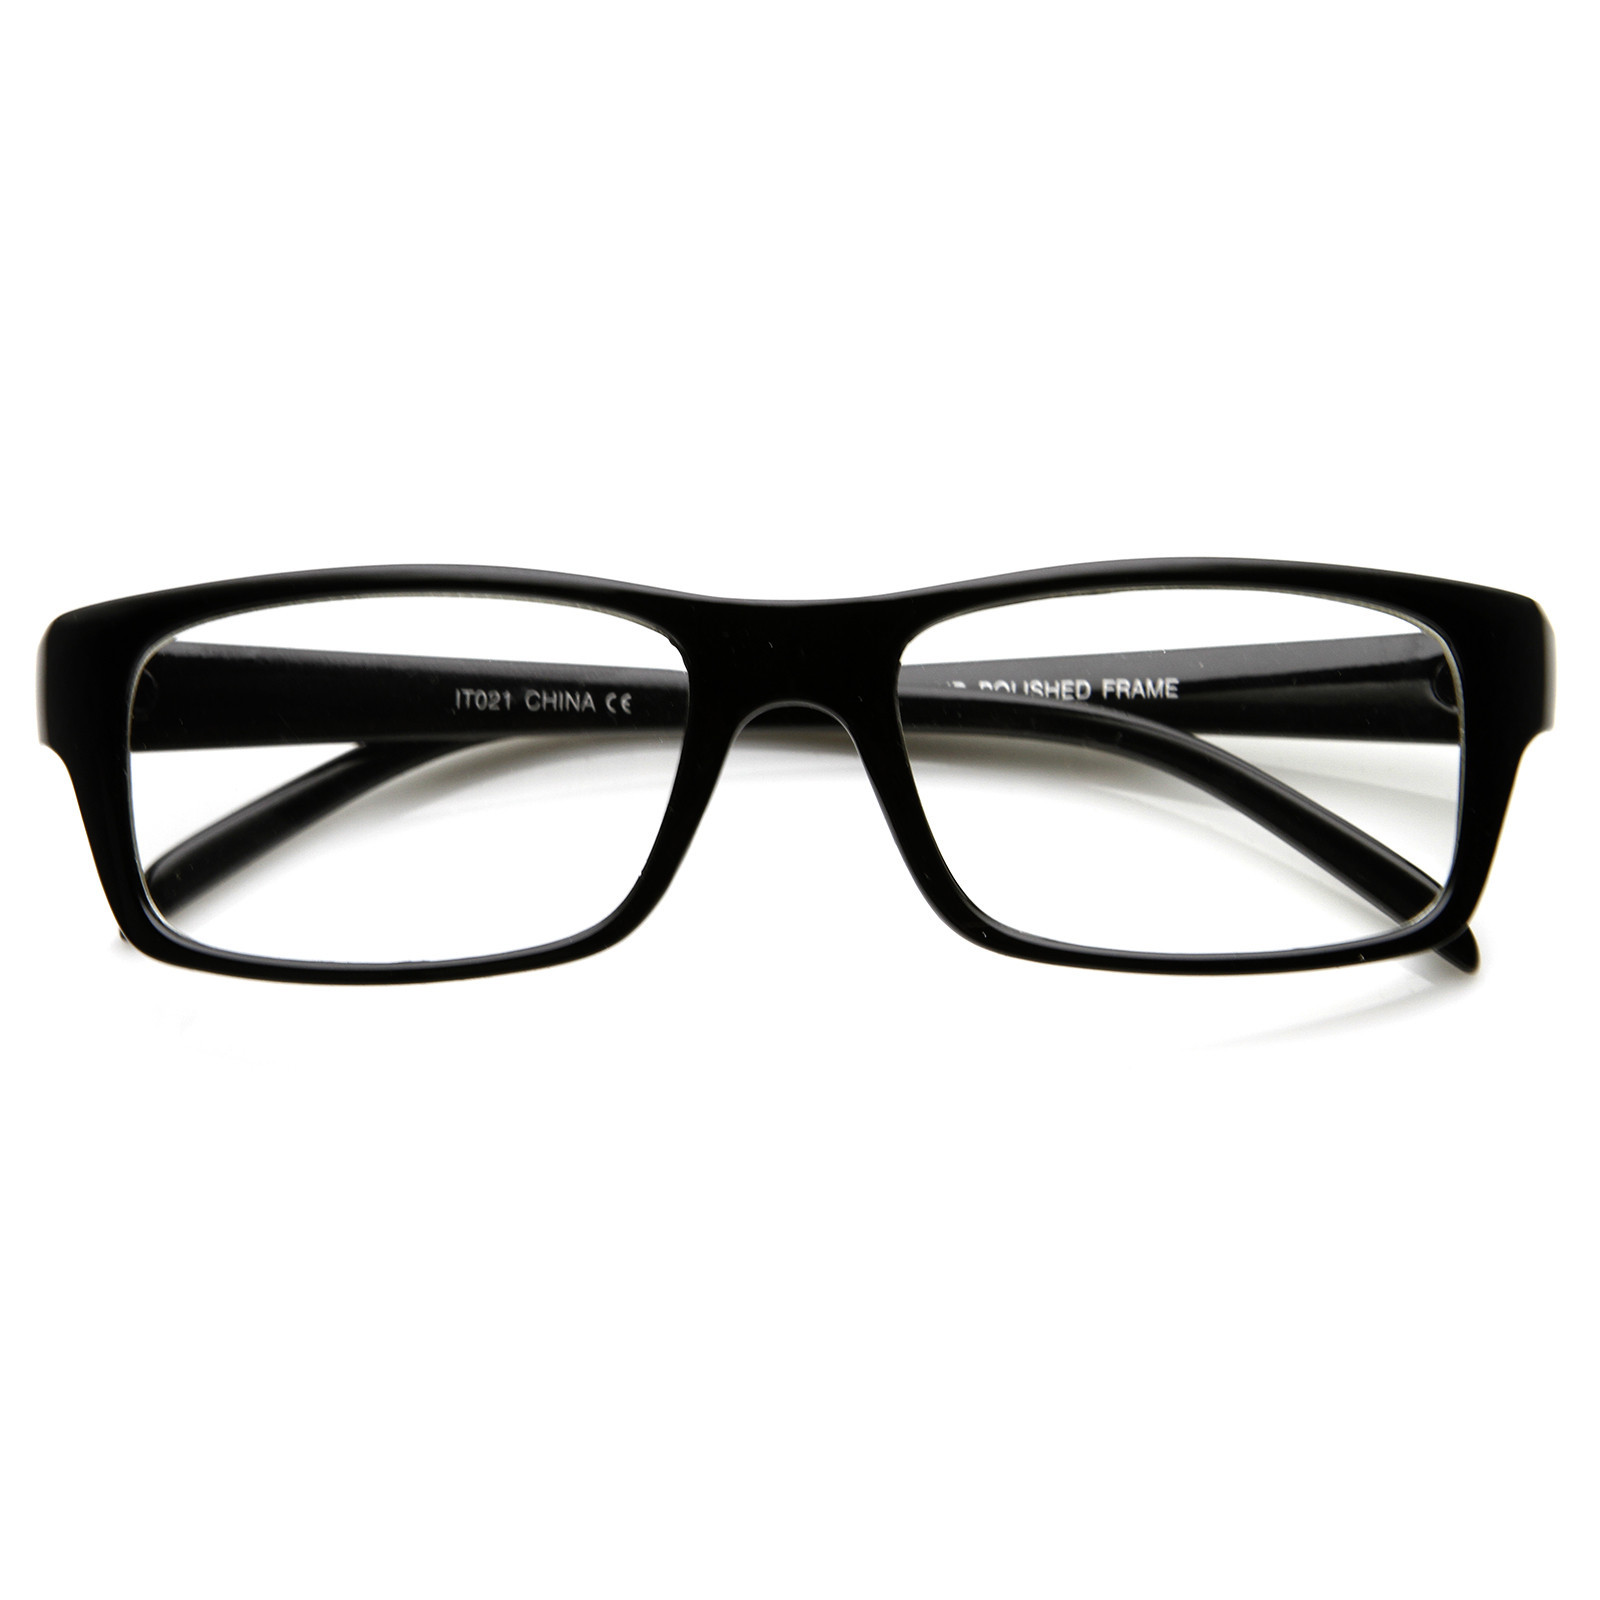 New Square Optical Frame Clear Lens Fashion Glasses 8716 - ZeroUV ...